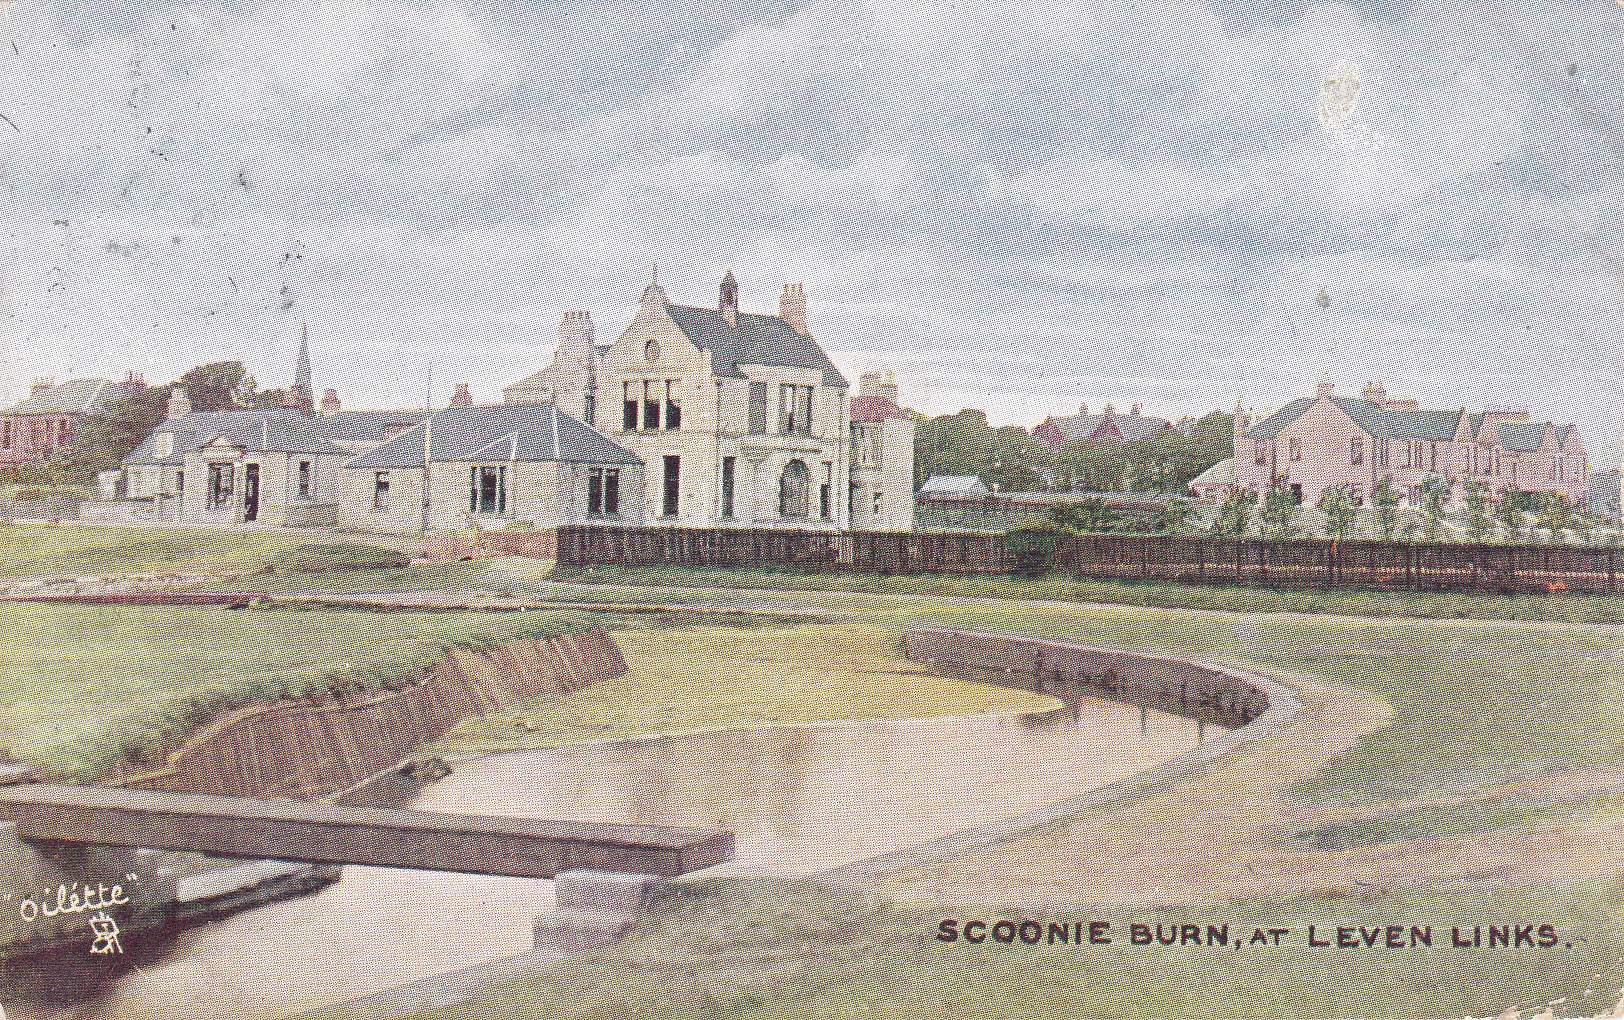 Scoonie Burn at Leven Links